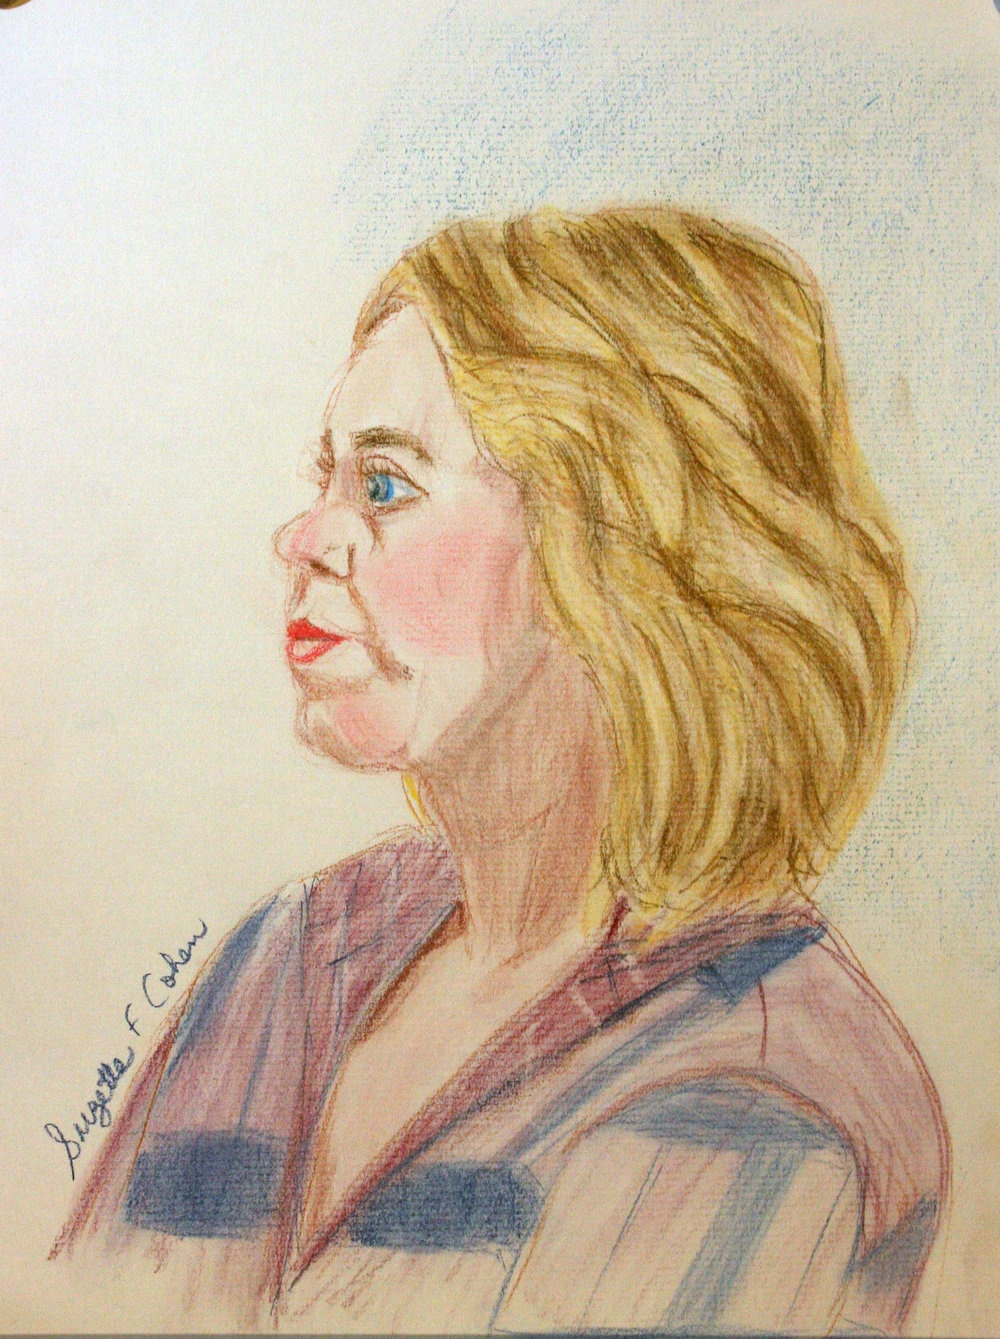 Suzette Cohen did this colored pencil drawing.